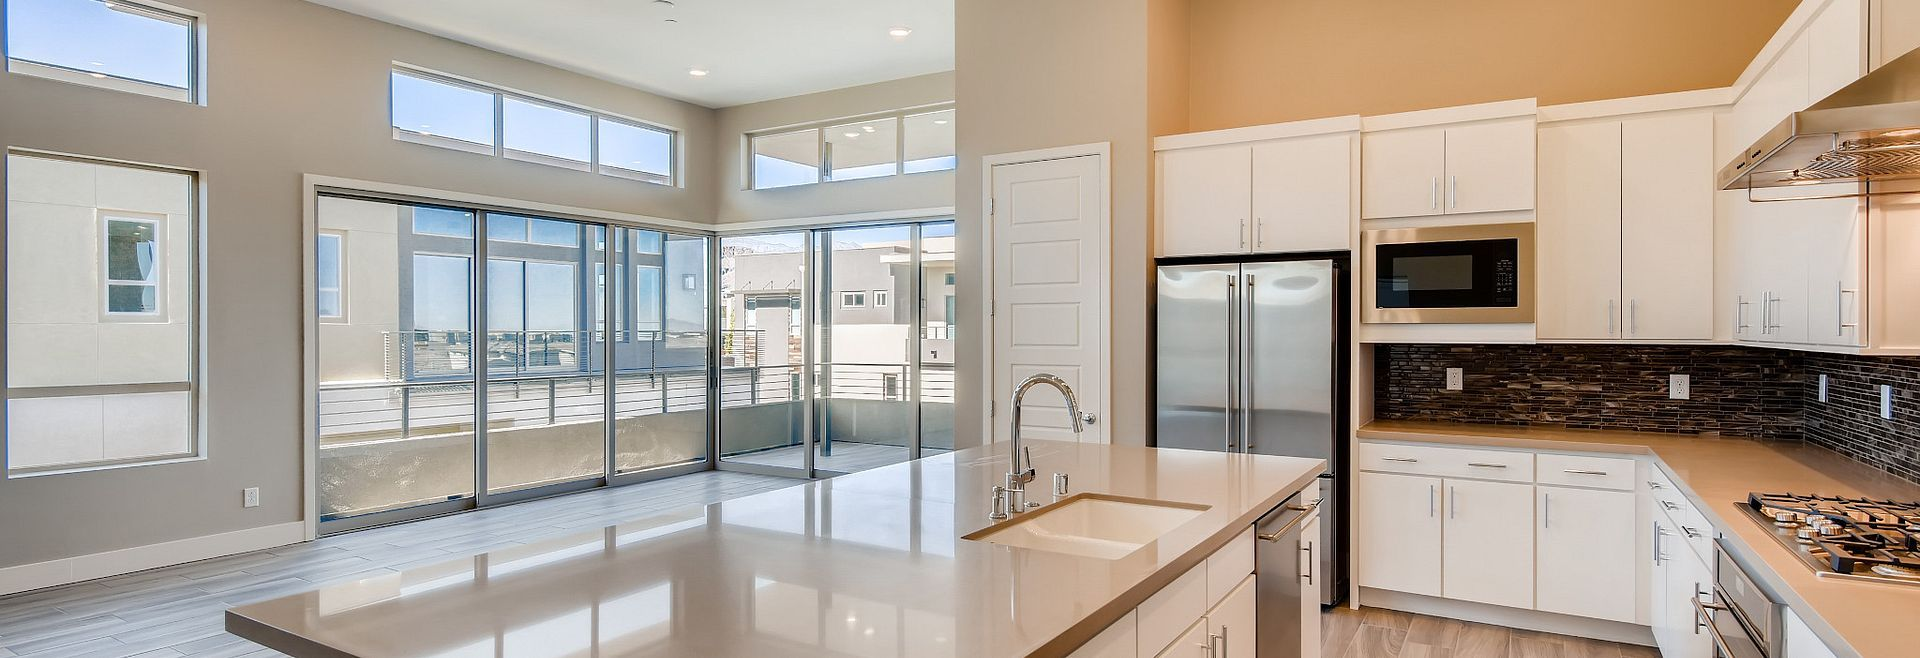 Kitchen featured in the Apex By Shea Homes - Trilogy in Las Vegas, NV